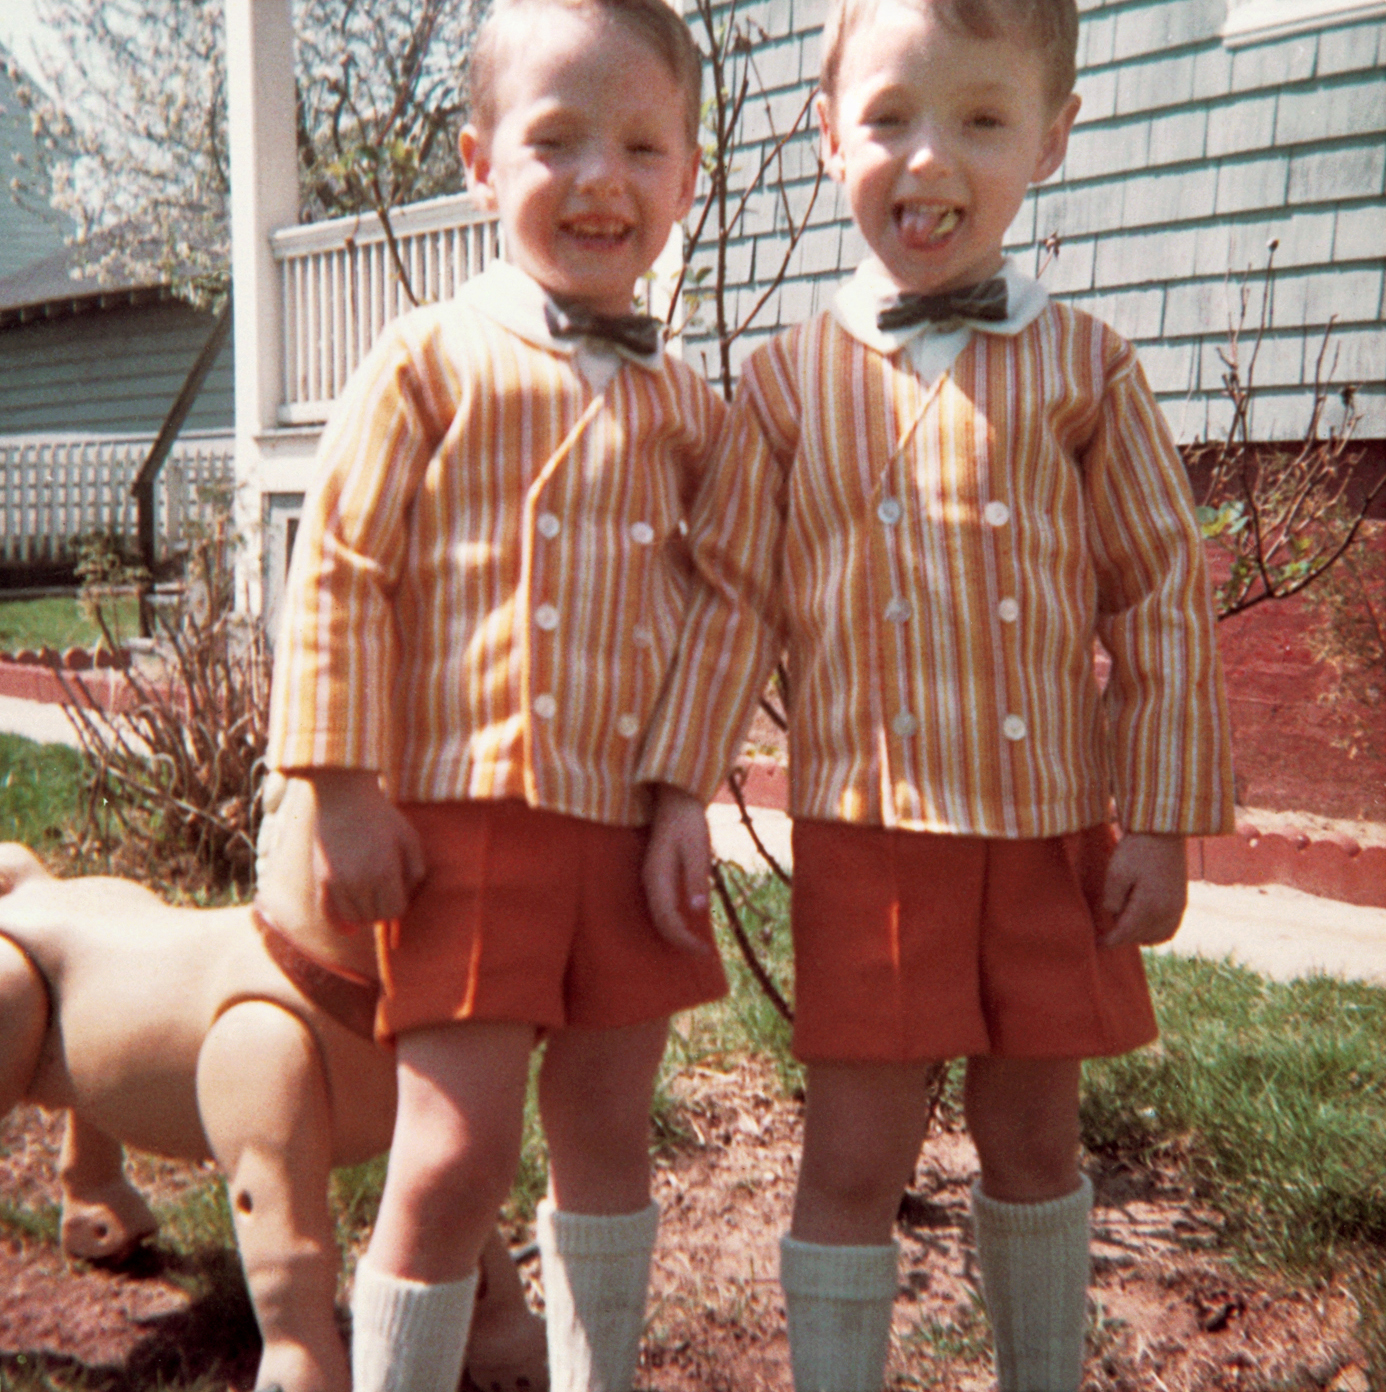 At age 3, Scott, left, and Mark wearing matching attire in 1967.